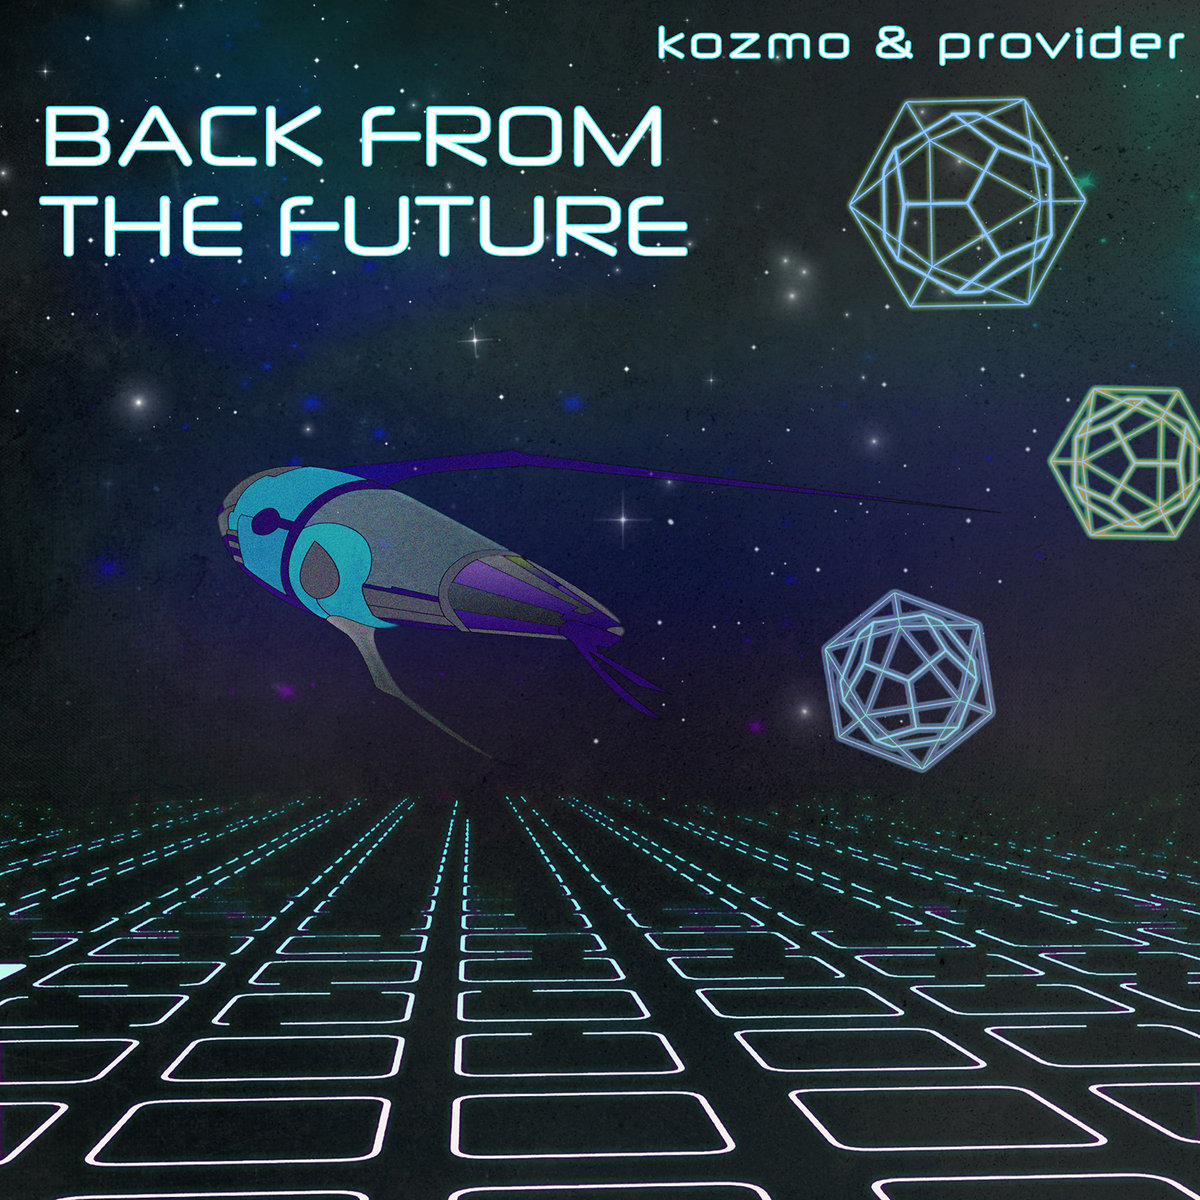 KOZMO & Provider - Metropolis (Resonant Language Remix) @ 'Back From the Future' album (electronic, dubstep)